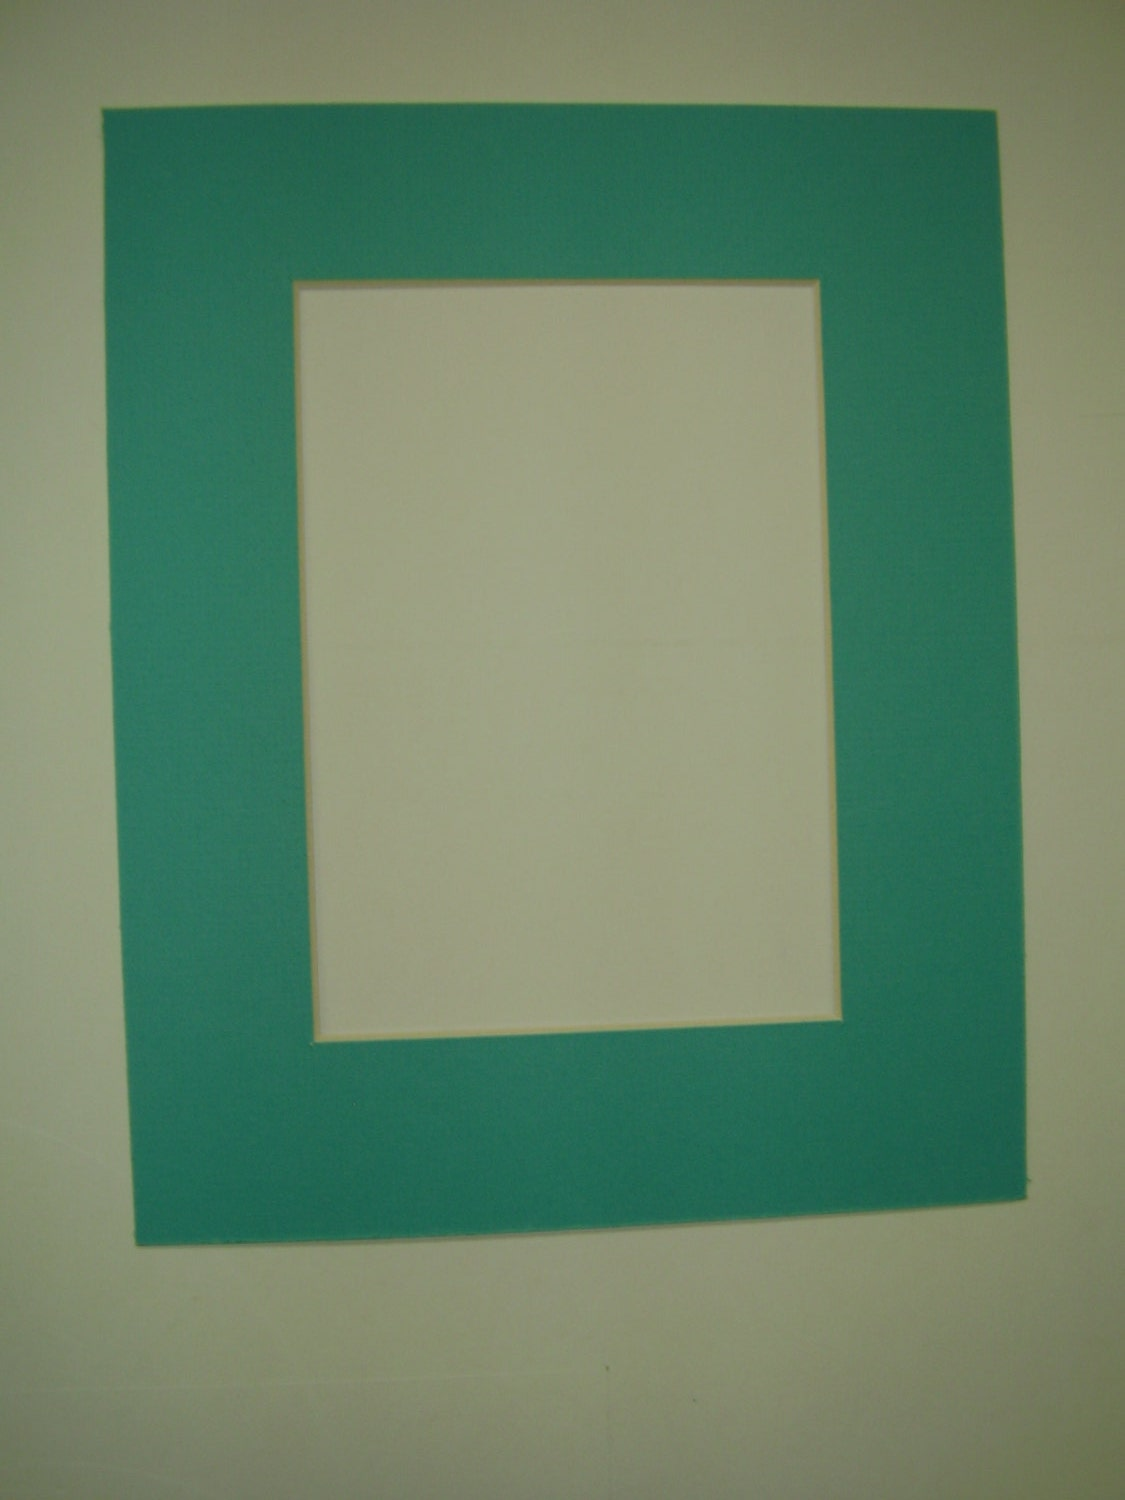 Picture Framing Mats Set Of 2 Turquoise Blue Single Mast